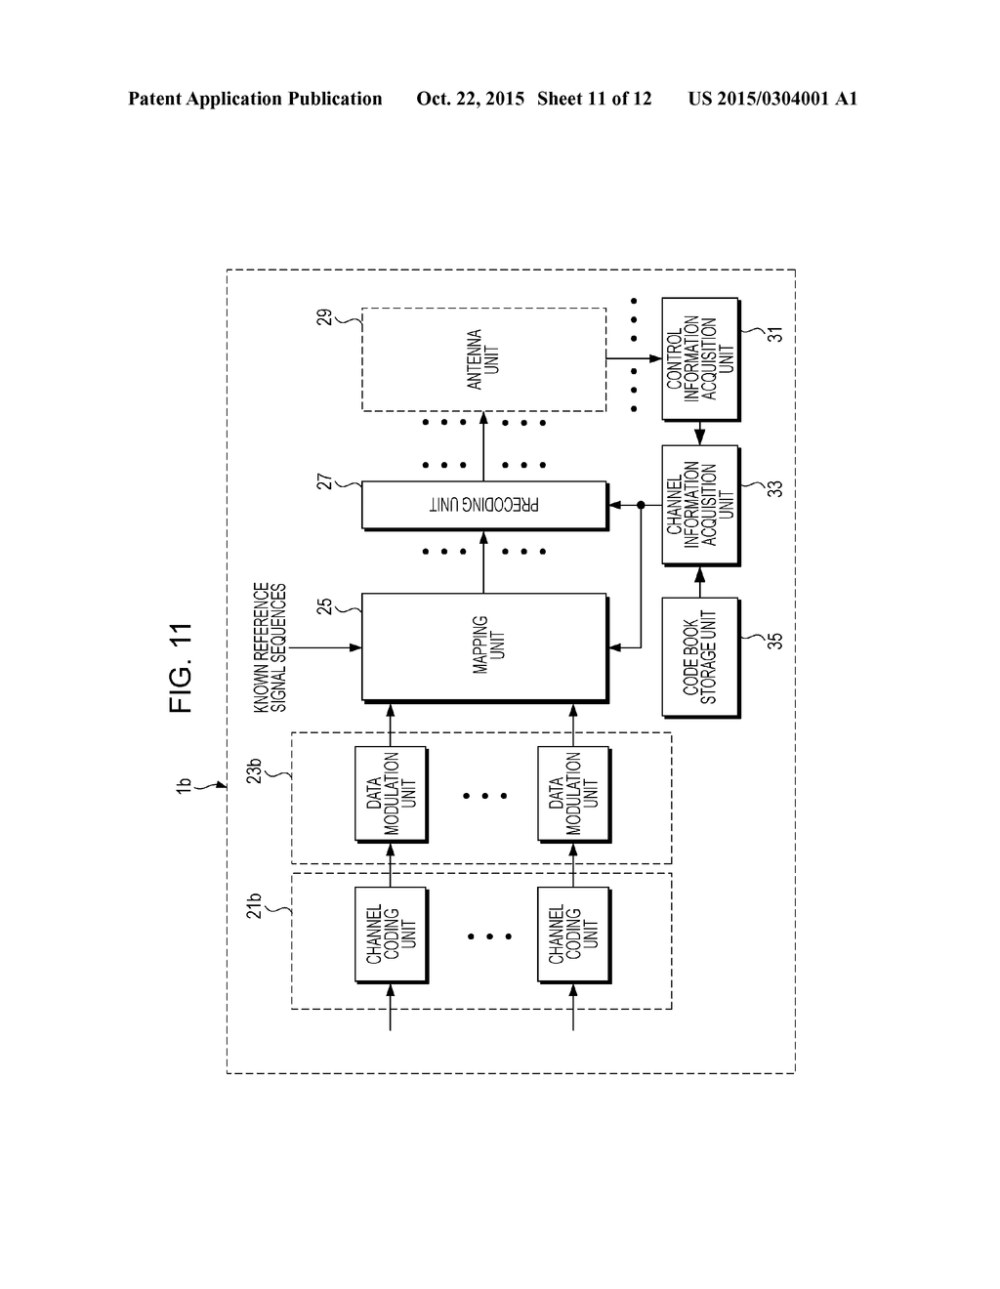 medium resolution of base station apparatus terminal apparatus wireless communication system and integrated circuit diagram schematic and image 12